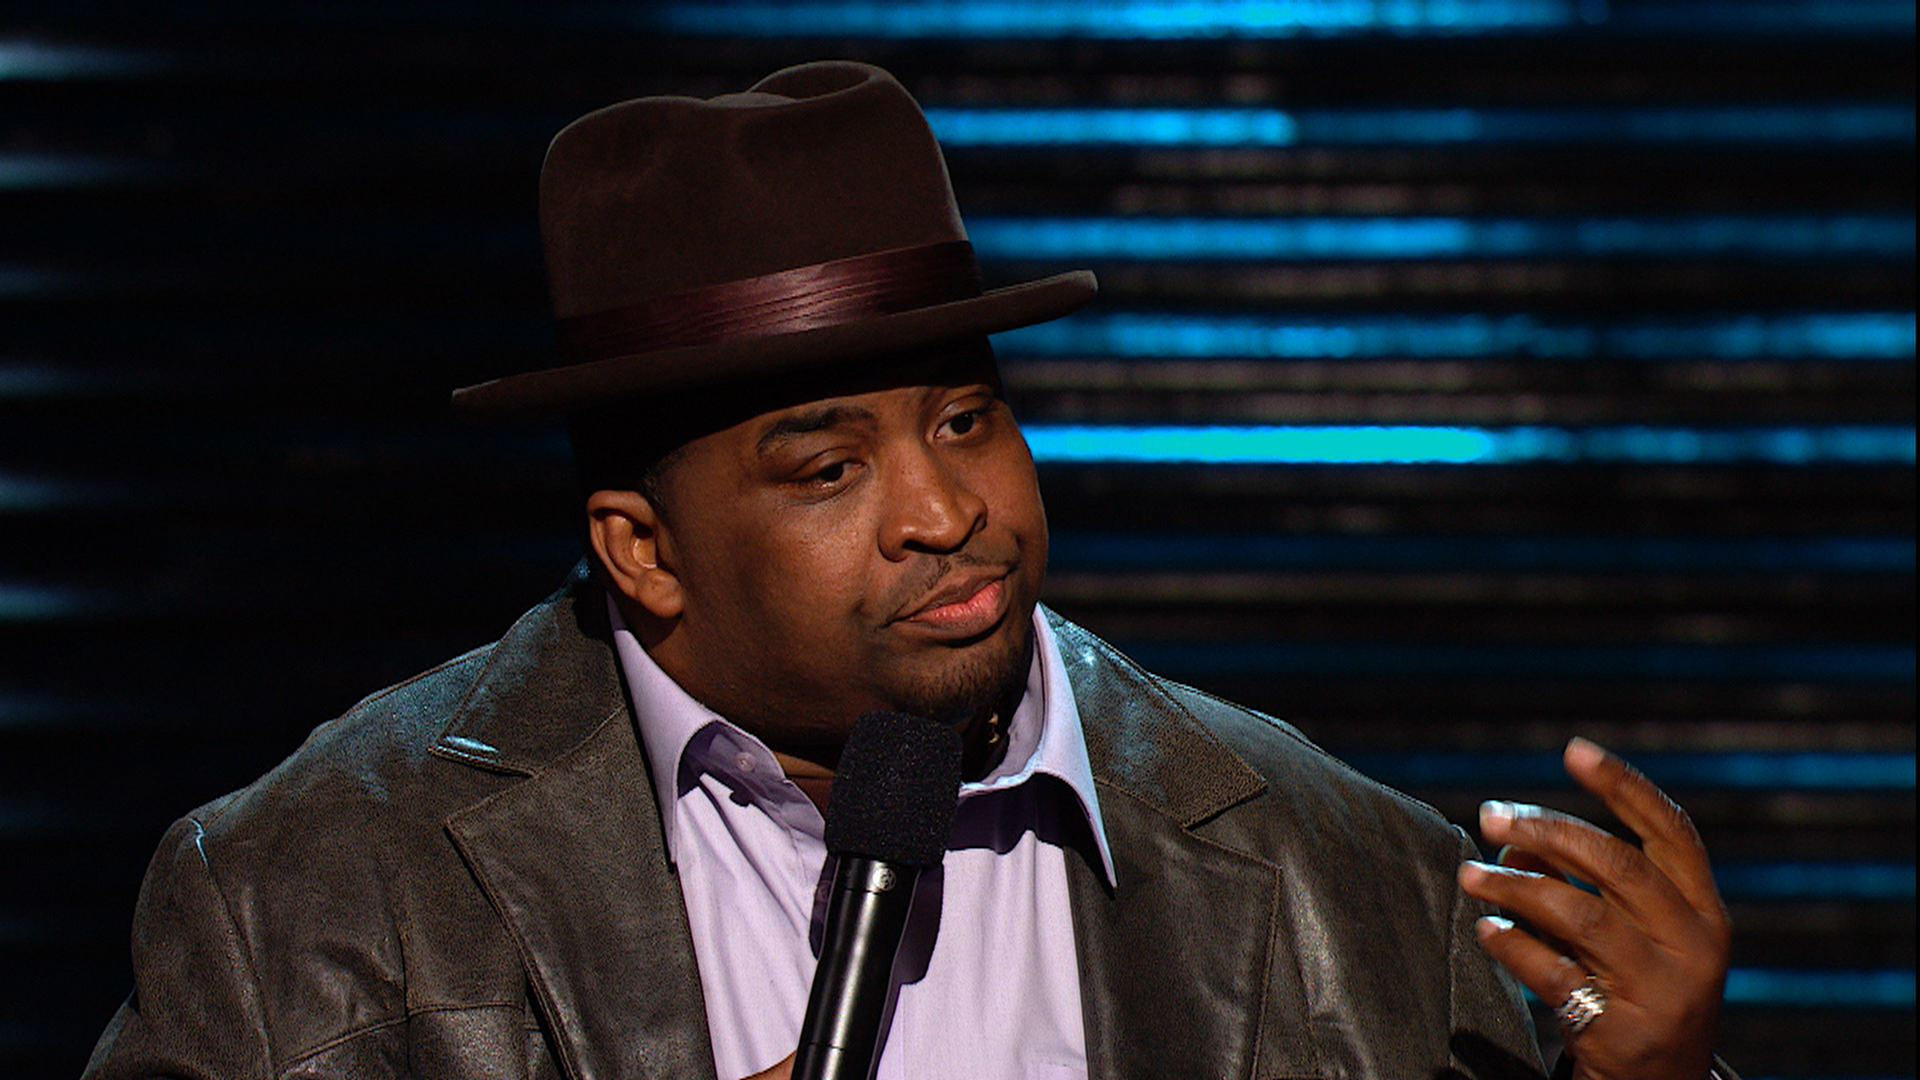 Patrice O'Neal - Valuable Life